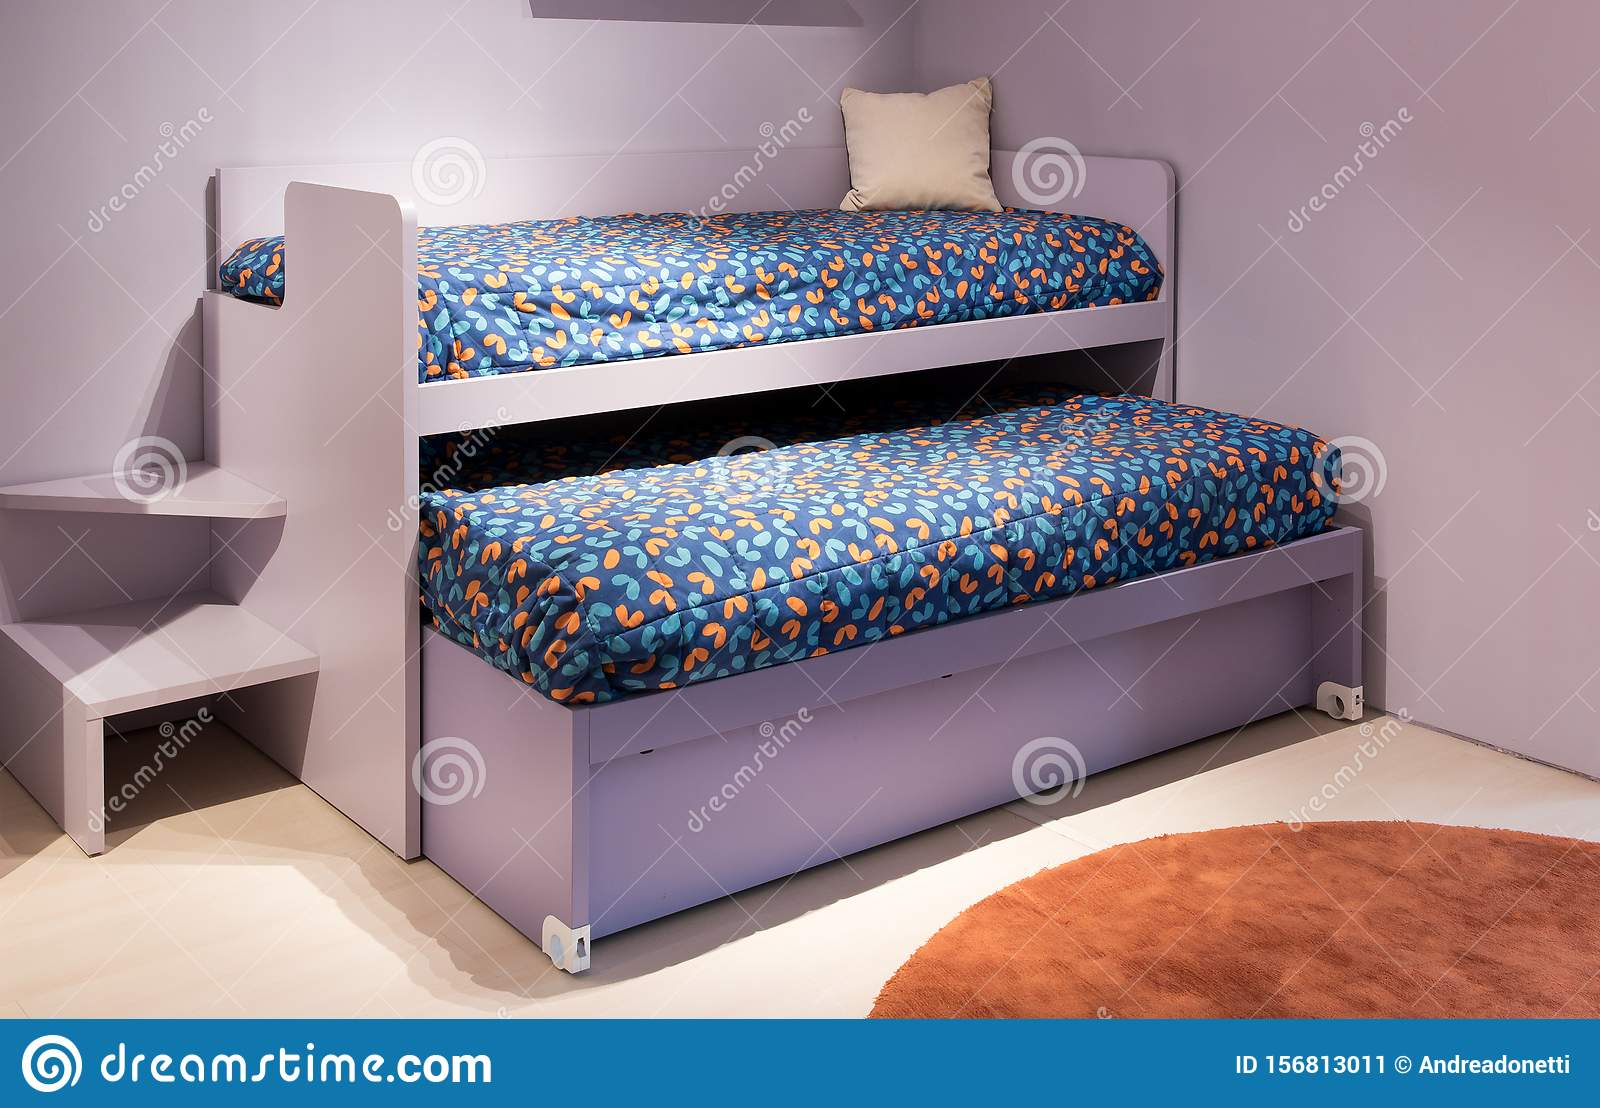 Picture of: Double Bunk Bed In A Kids Bedroom Stock Image Image Of Home Designer 156813011